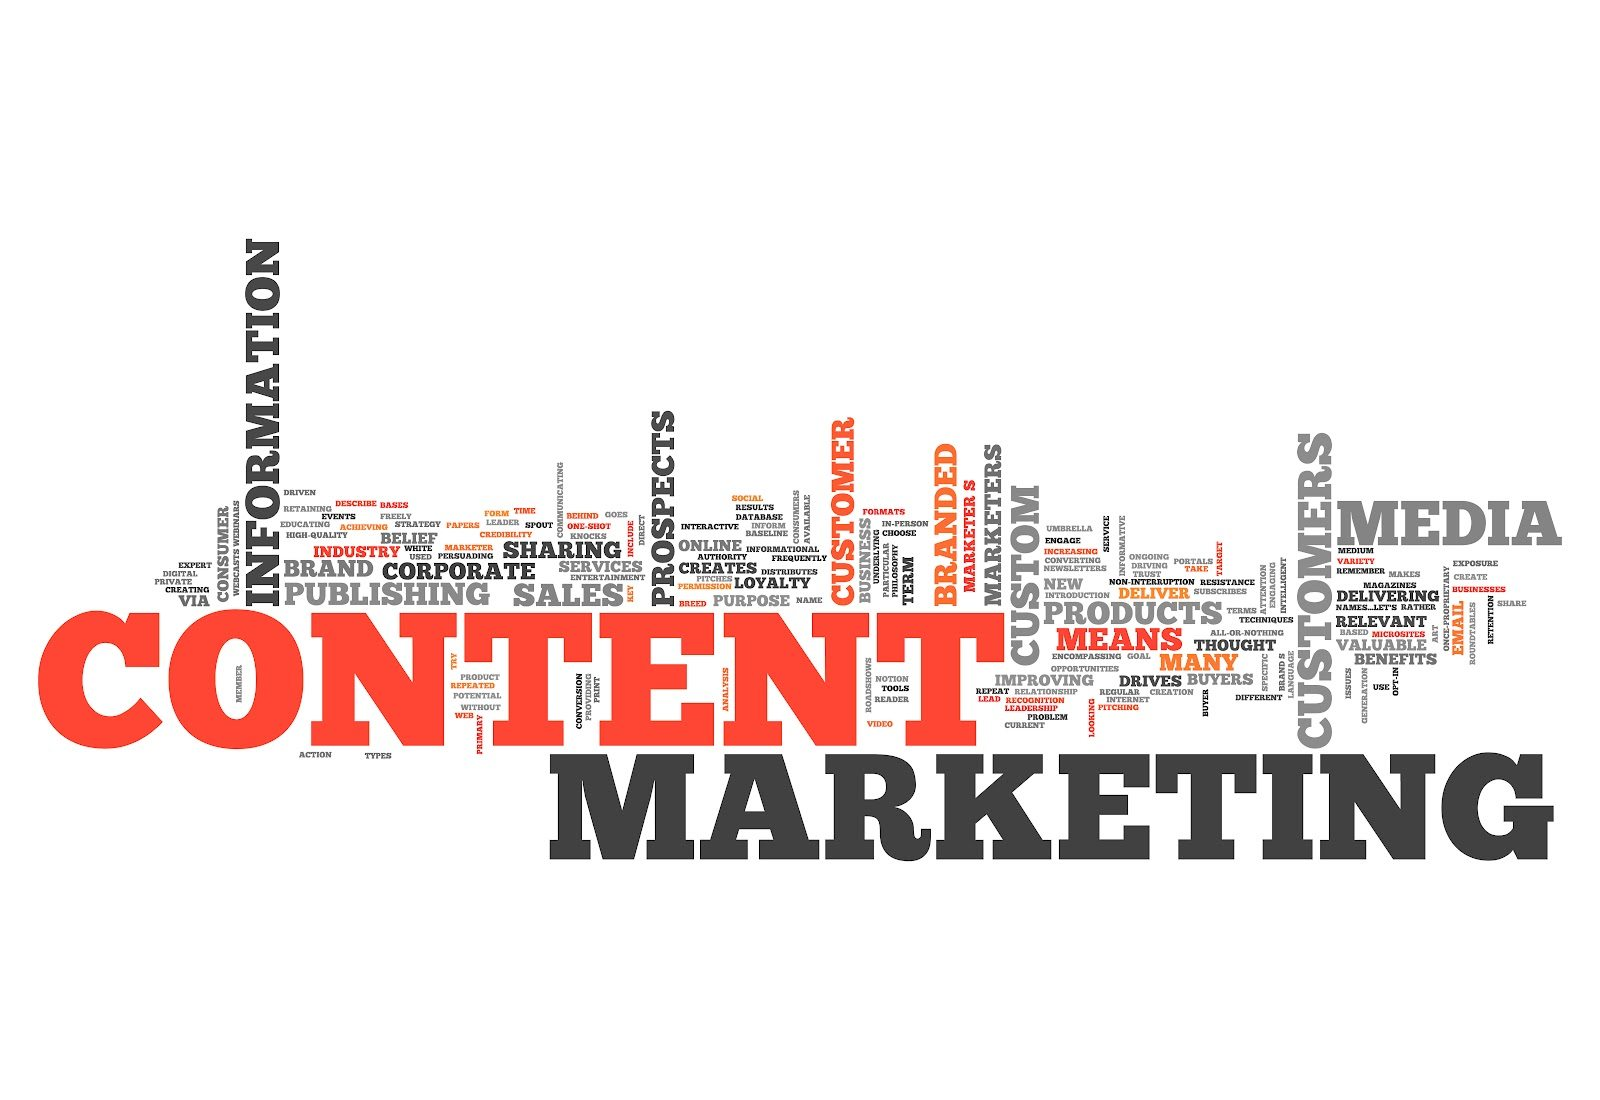 marketingreview - content marketing